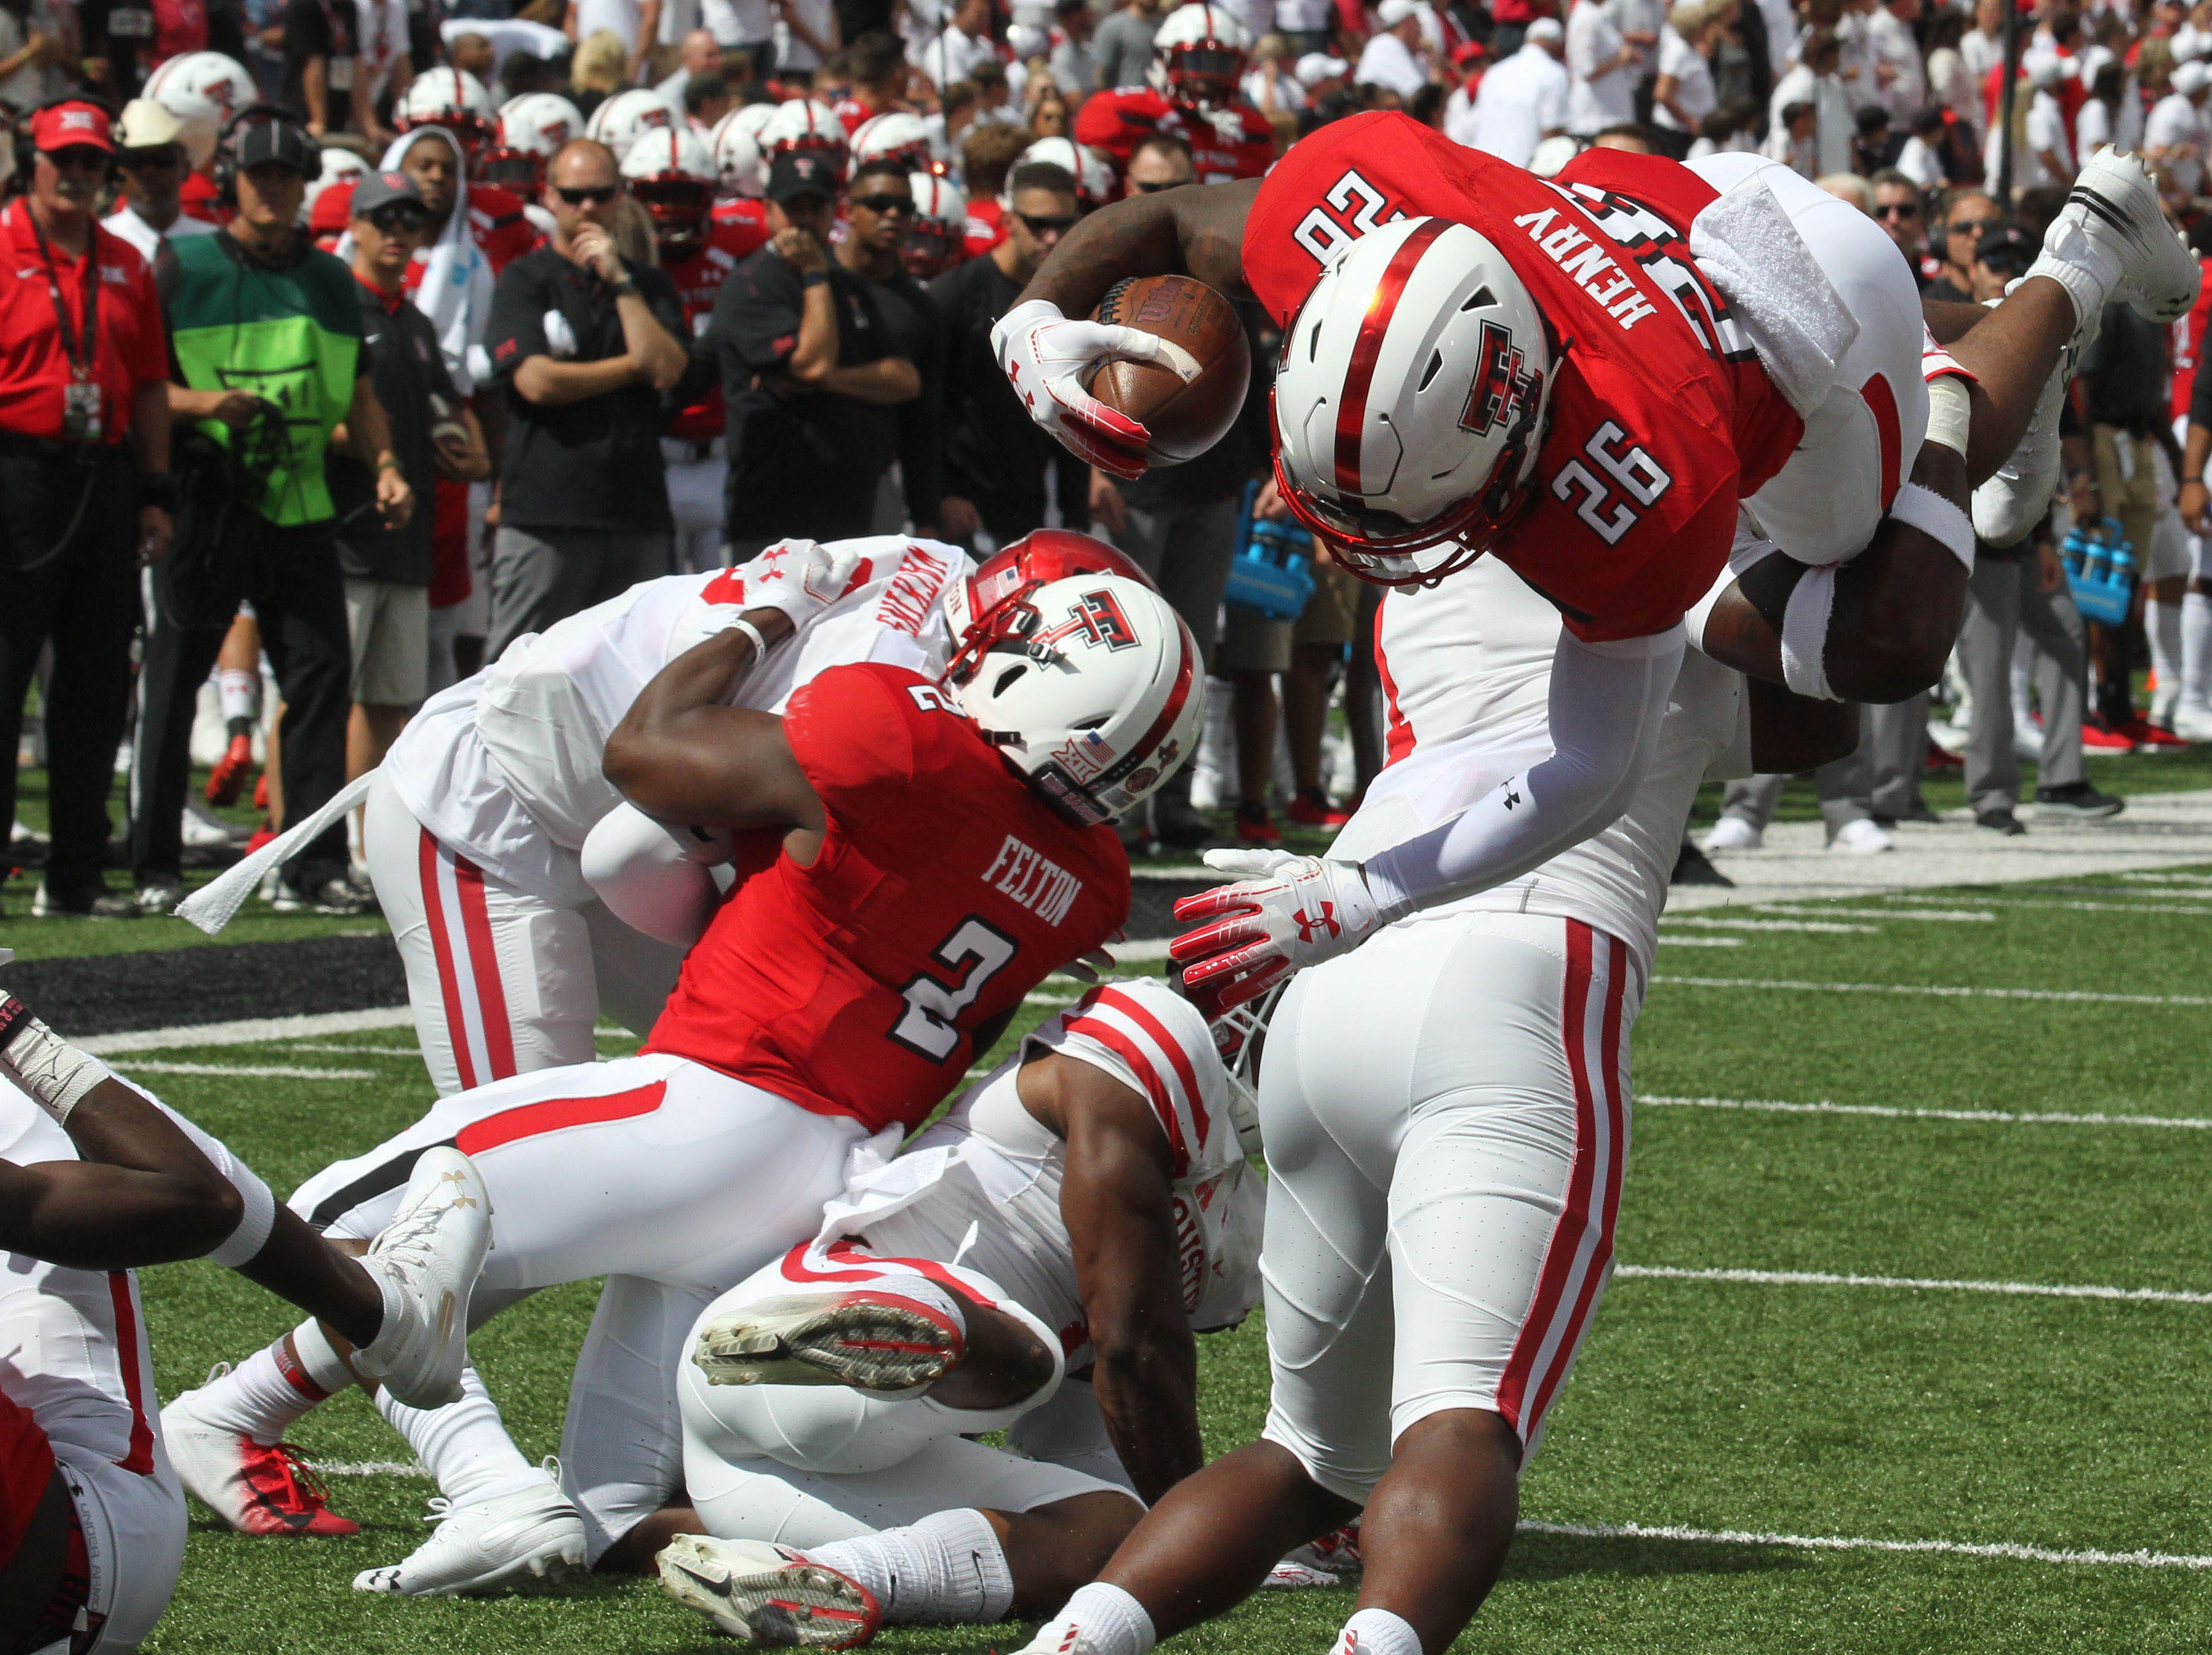 Texas Tech Red Raiders running back Ta'Zhawn Henry (26) dives for a touchdown against the Houston Cougars in the first half at Jones AT&T Stadium.